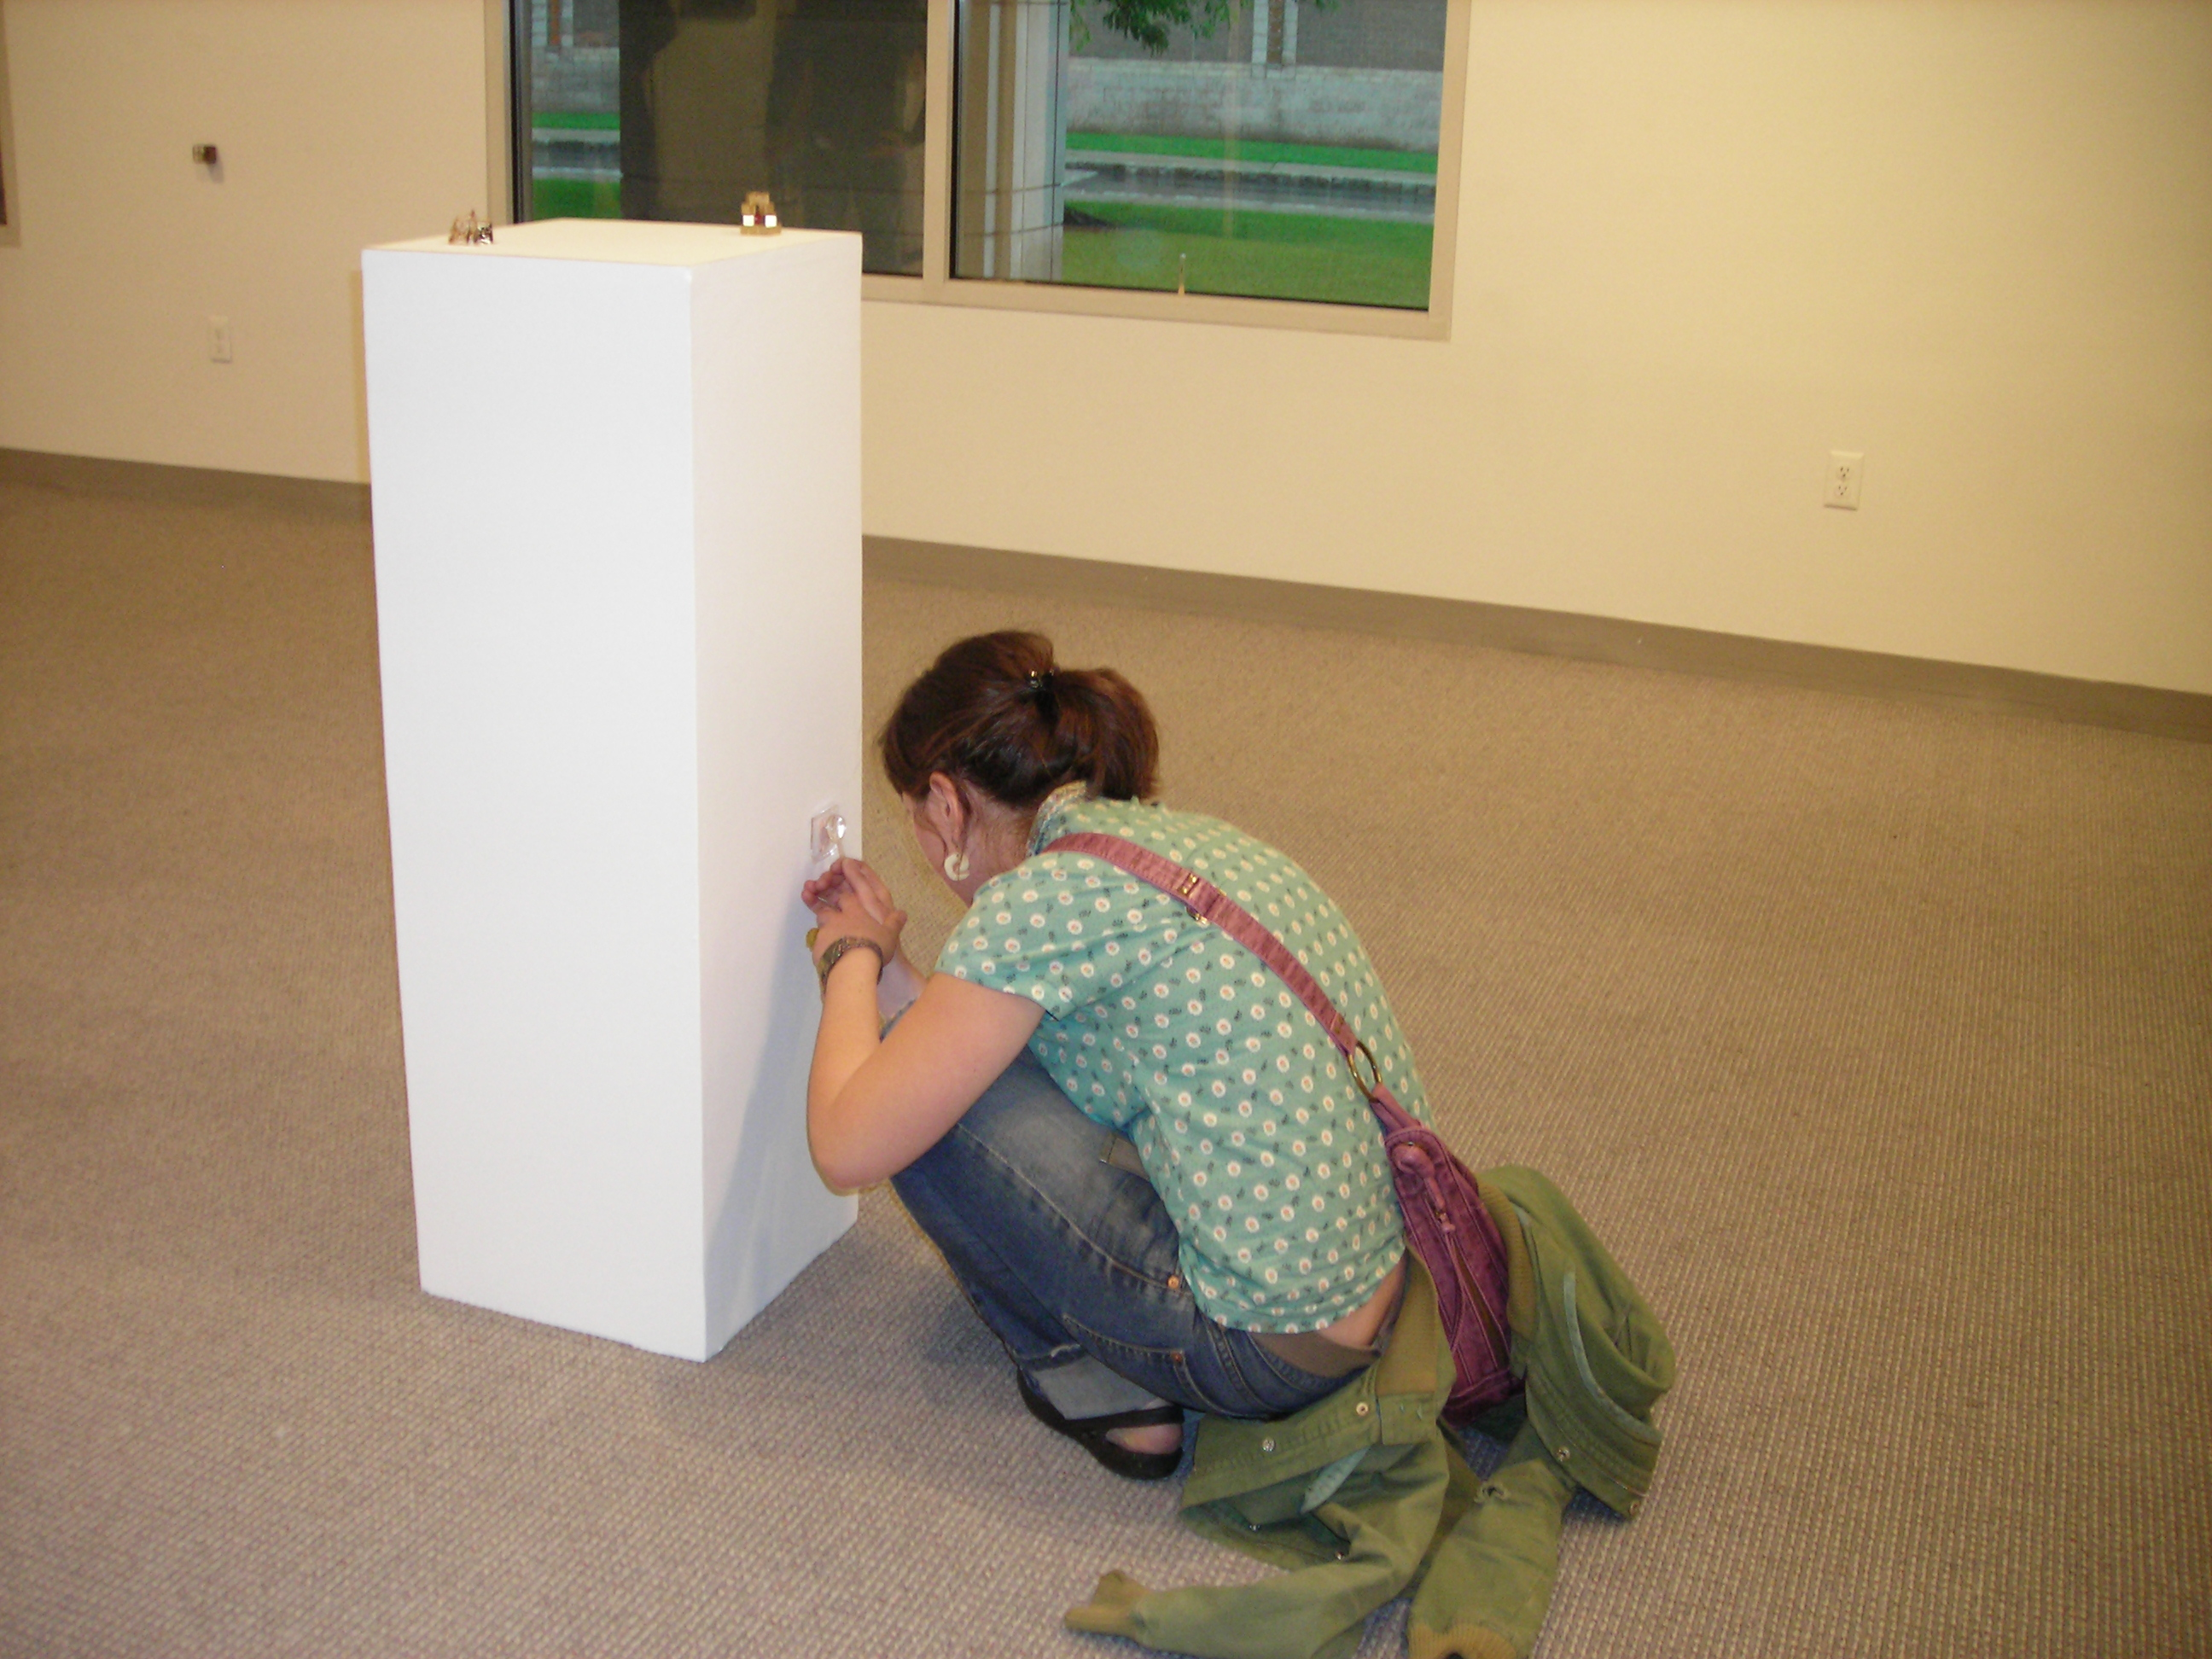 student working on exhibit set up